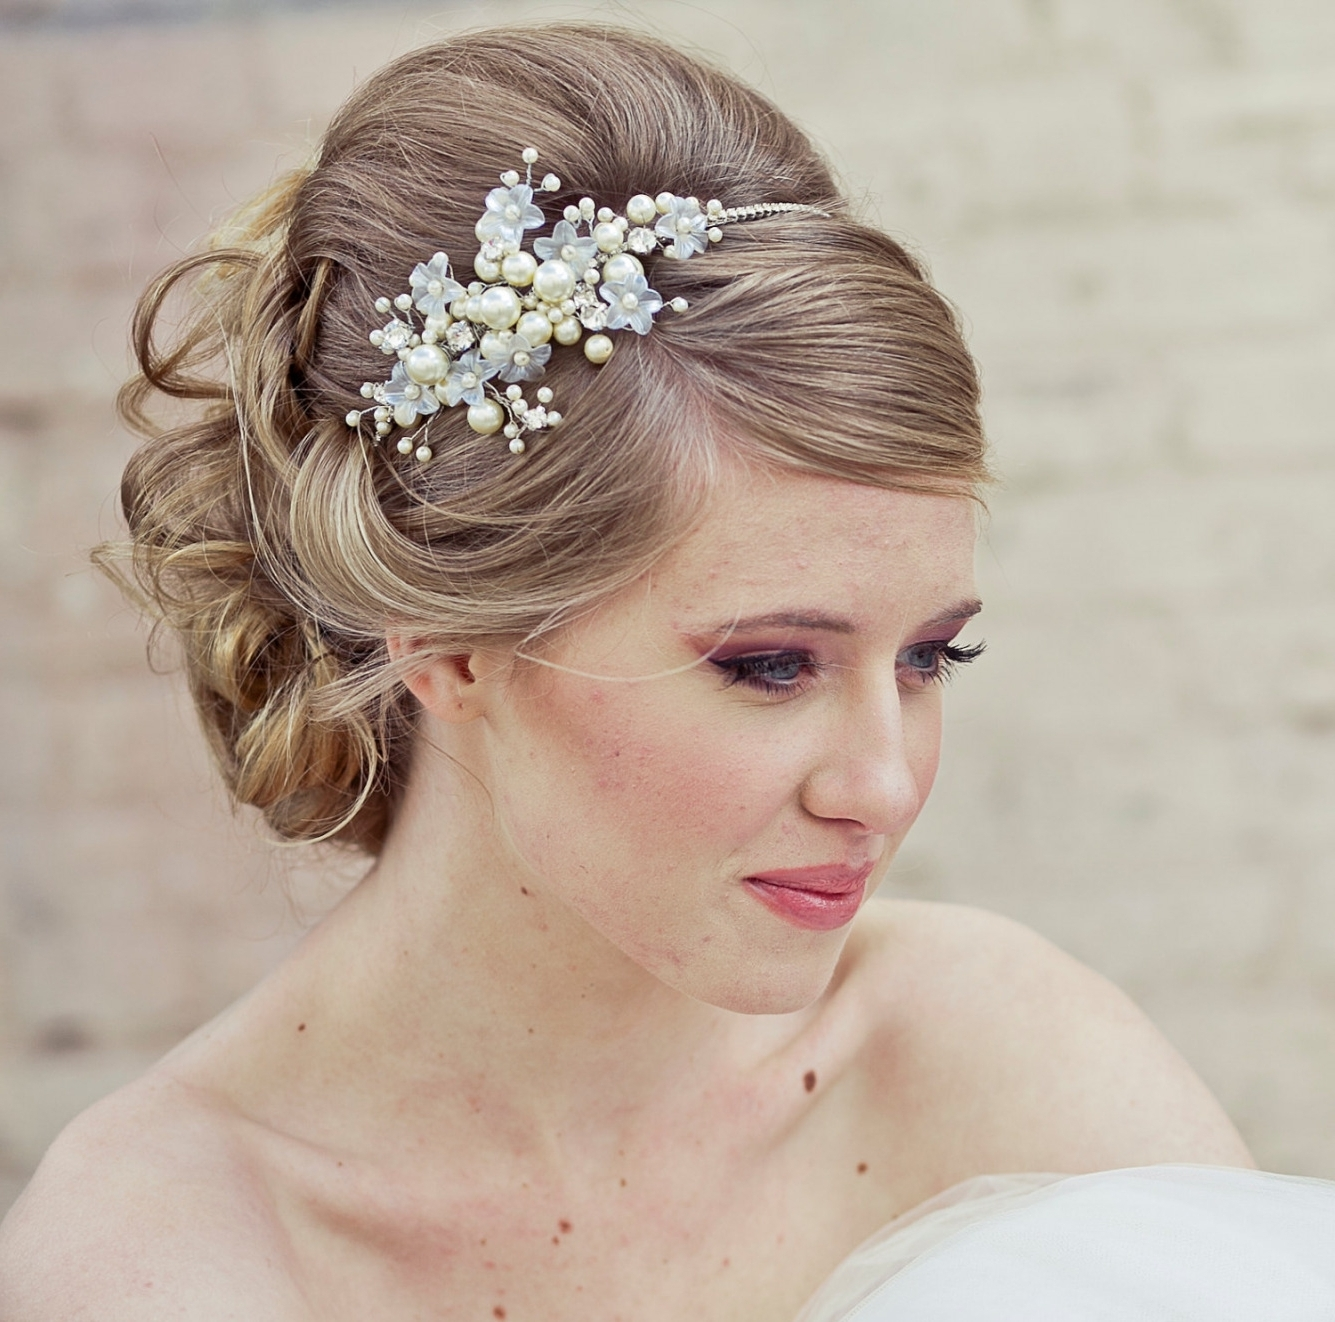 Vintage Inside Well Liked Wedding Hairstyles For Shoulder Length Hair With Tiara (View 12 of 15)